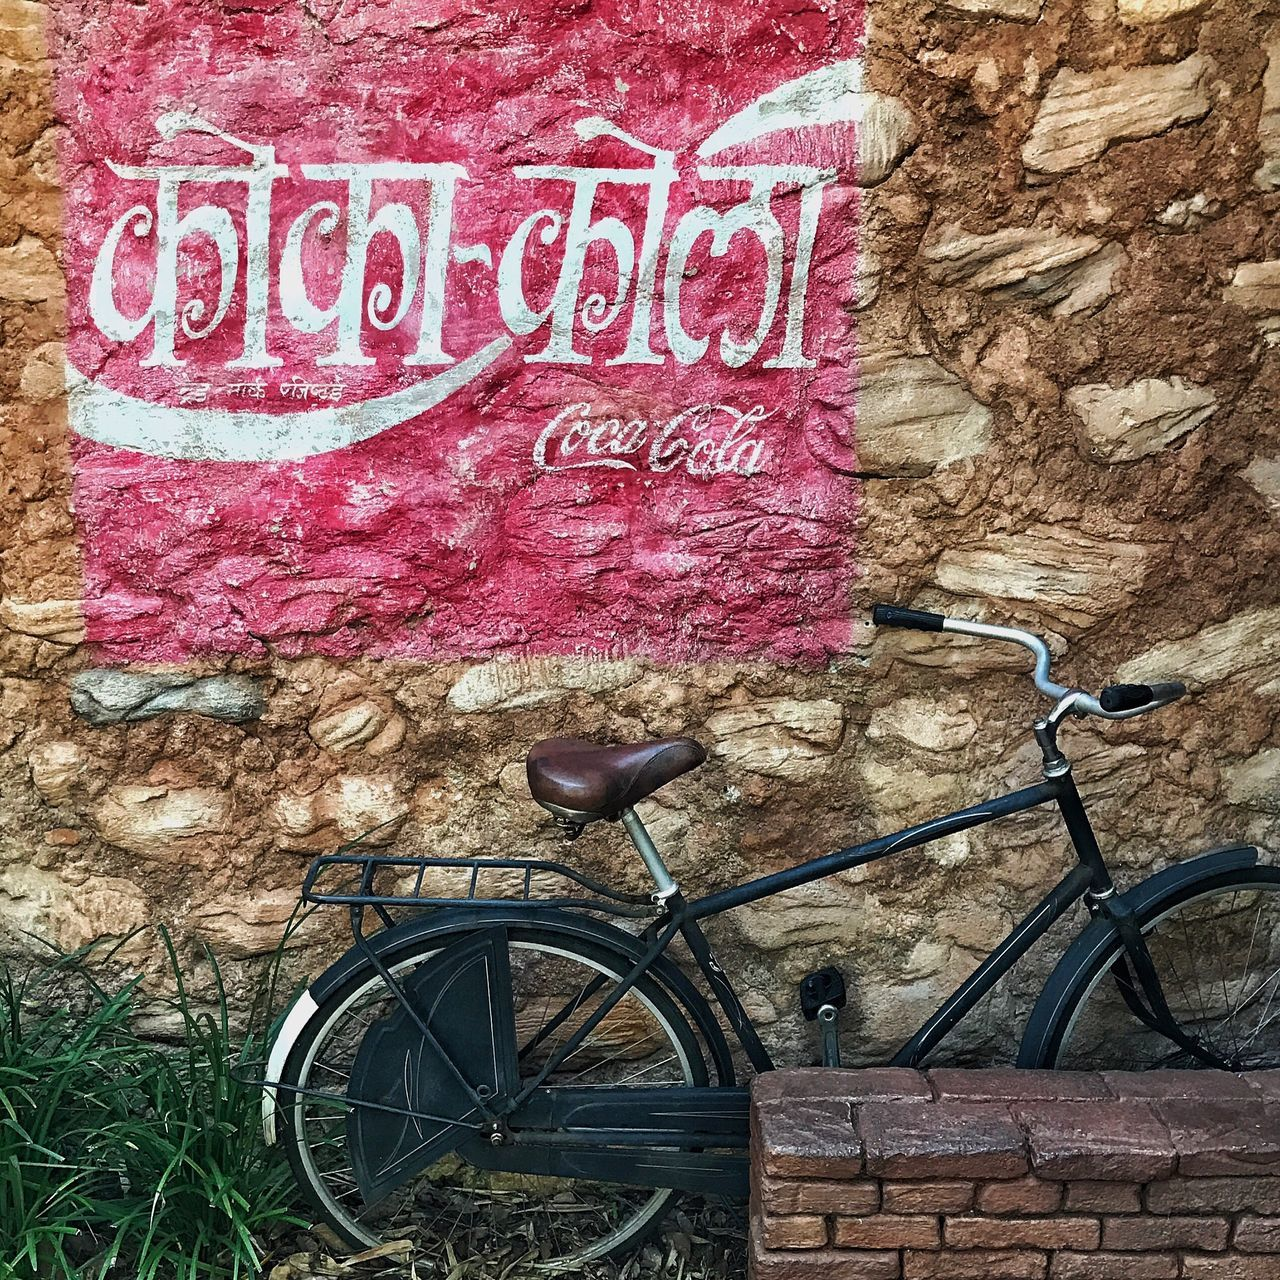 Bicycle Transportation Mode Of Transport Stationary No People Outdoors Land Vehicle Old-fashioned Text Flower Vacations Day Close-up